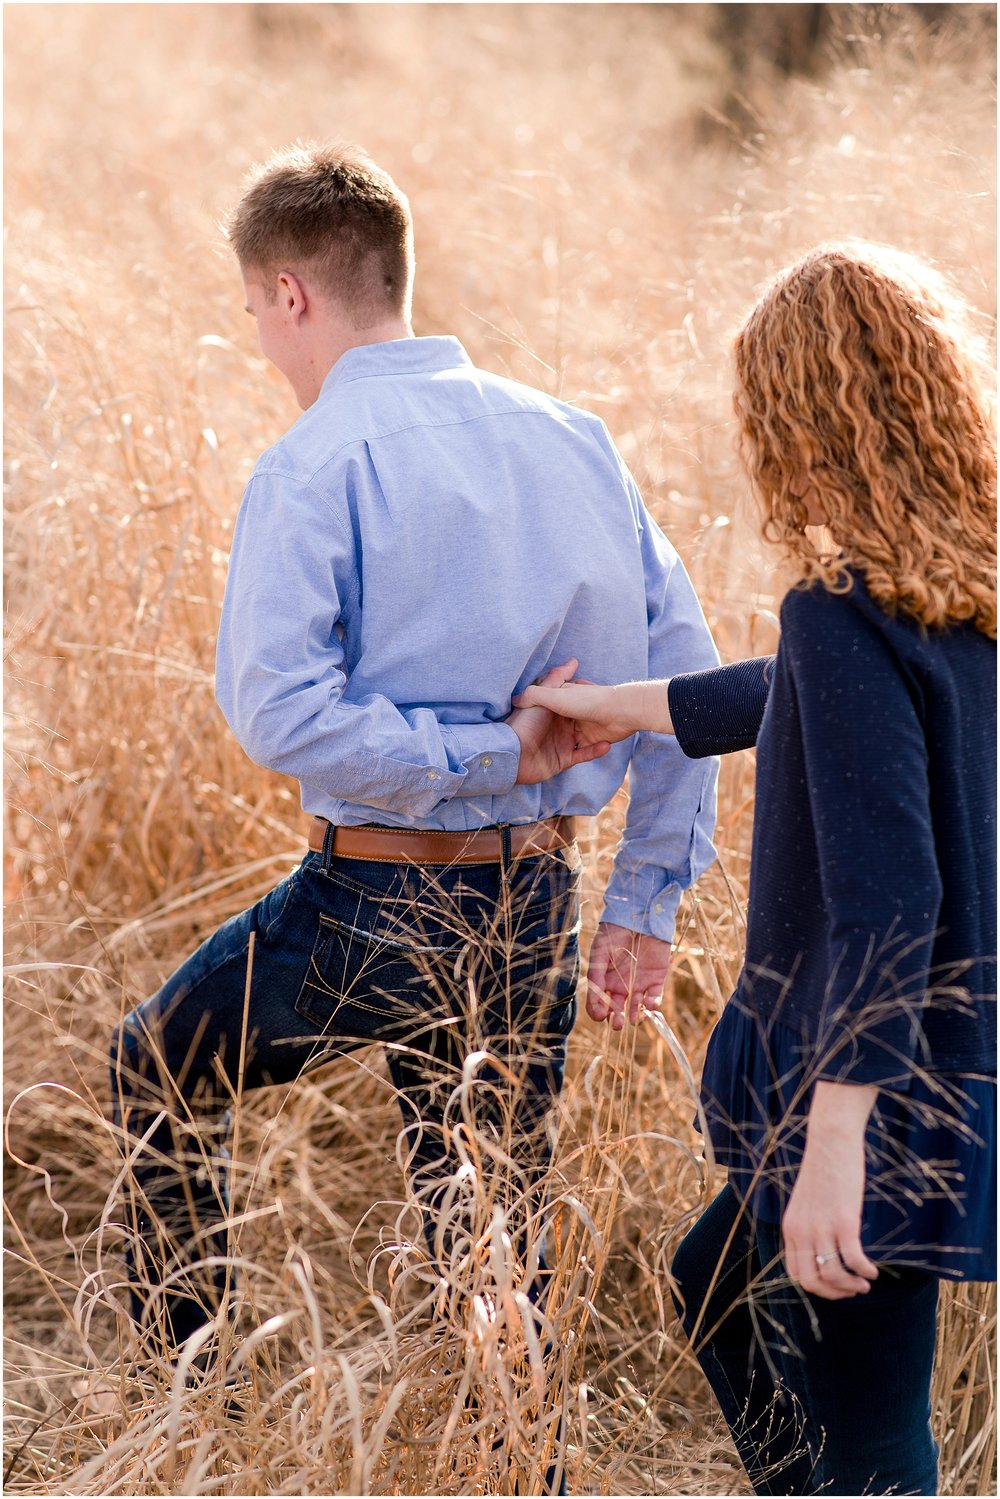 Hannah Leigh Photography State College, PA Engagement Session_3310.jpg